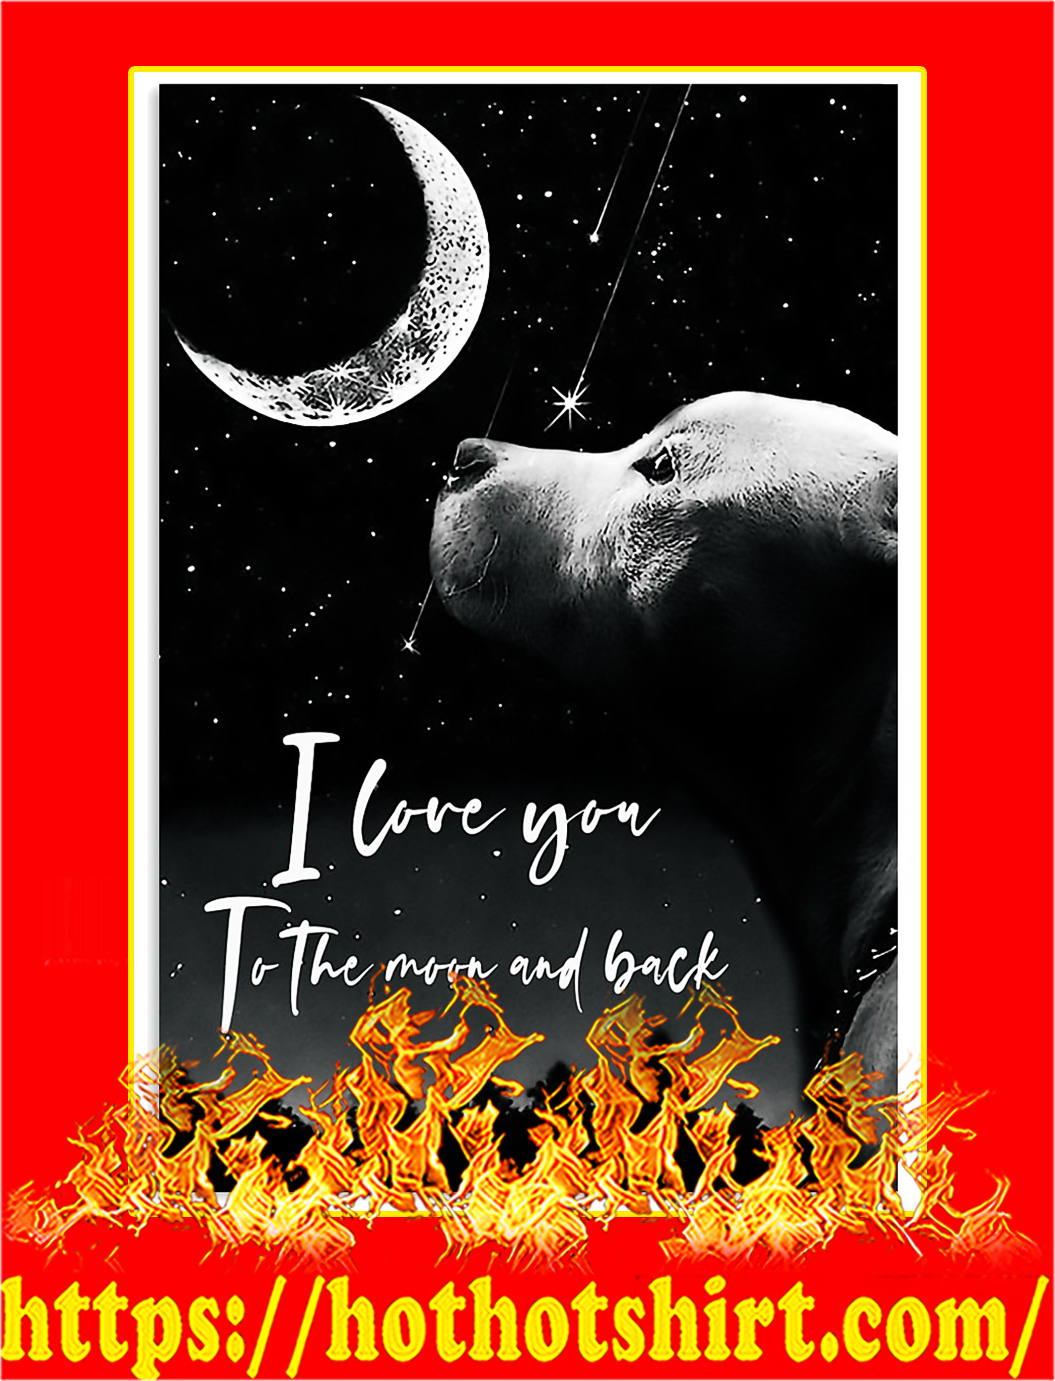 Pitbull i love you to the moon and back poster - A3